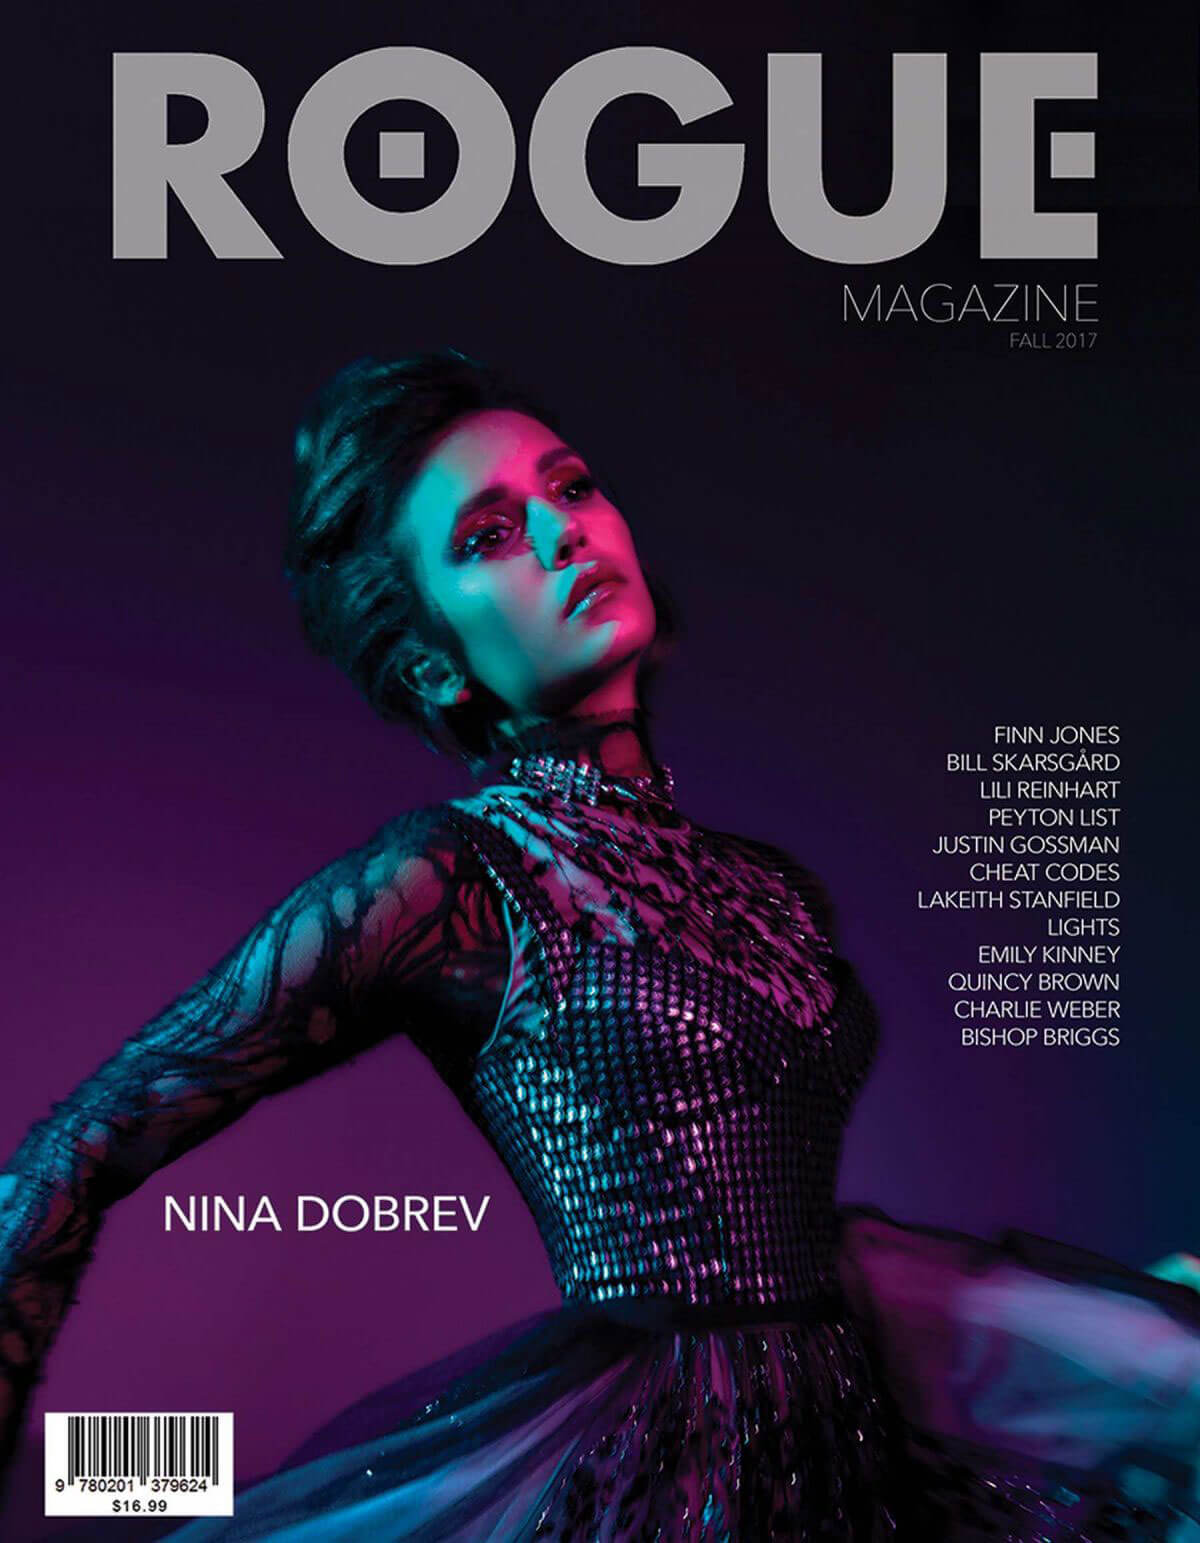 Nina Dobrev Poses for Rogue Magazine, Fall 2017 Photos